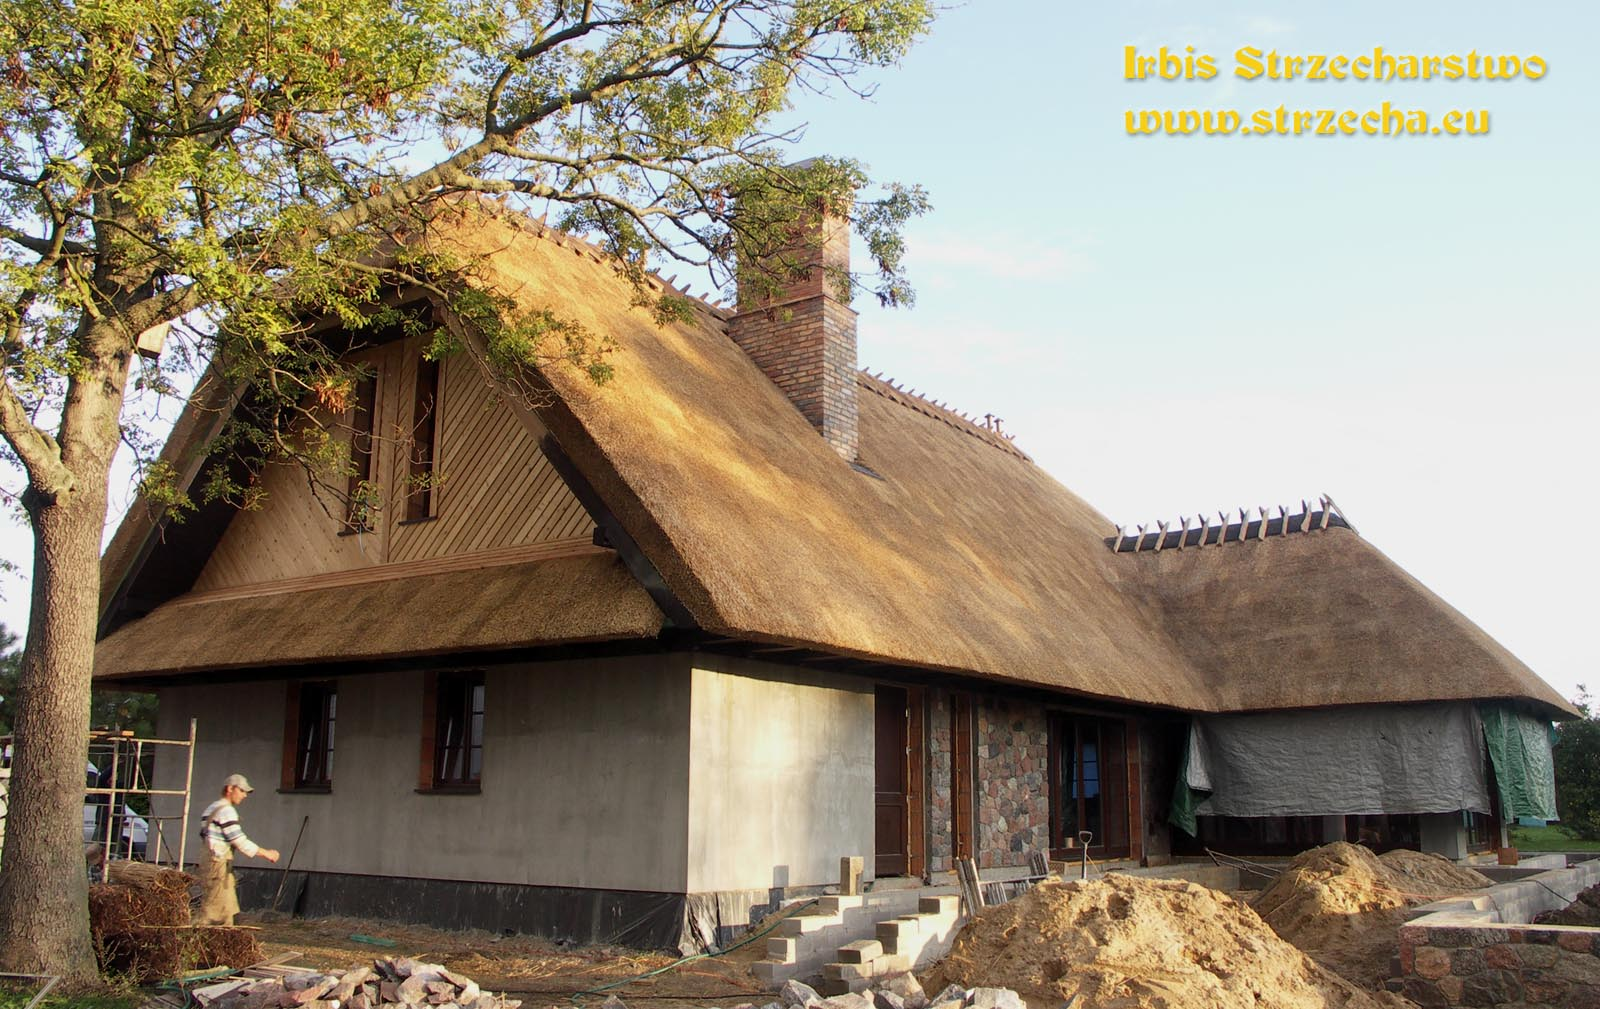 Build a beautiful house with a thatched roof.